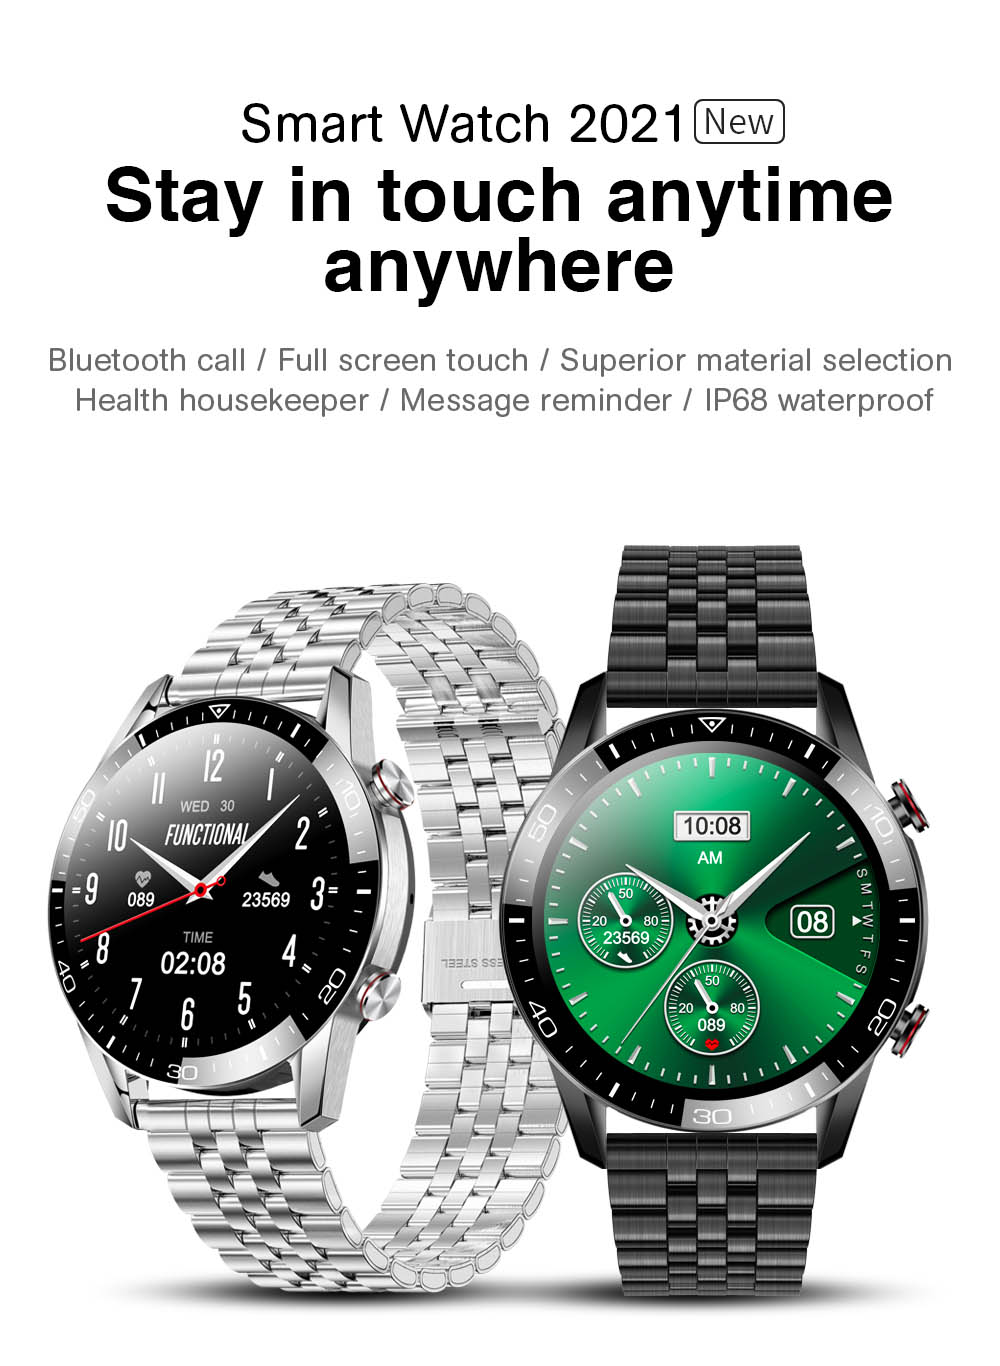 H1e1451d2fa32444dab089768253d234dV TK2-8 Smart Watch For Men Bluetooth Call IP68 Waterproof Blood Pressure Heart Rate Monitor New SmartWatch Sports Fitness Tracker